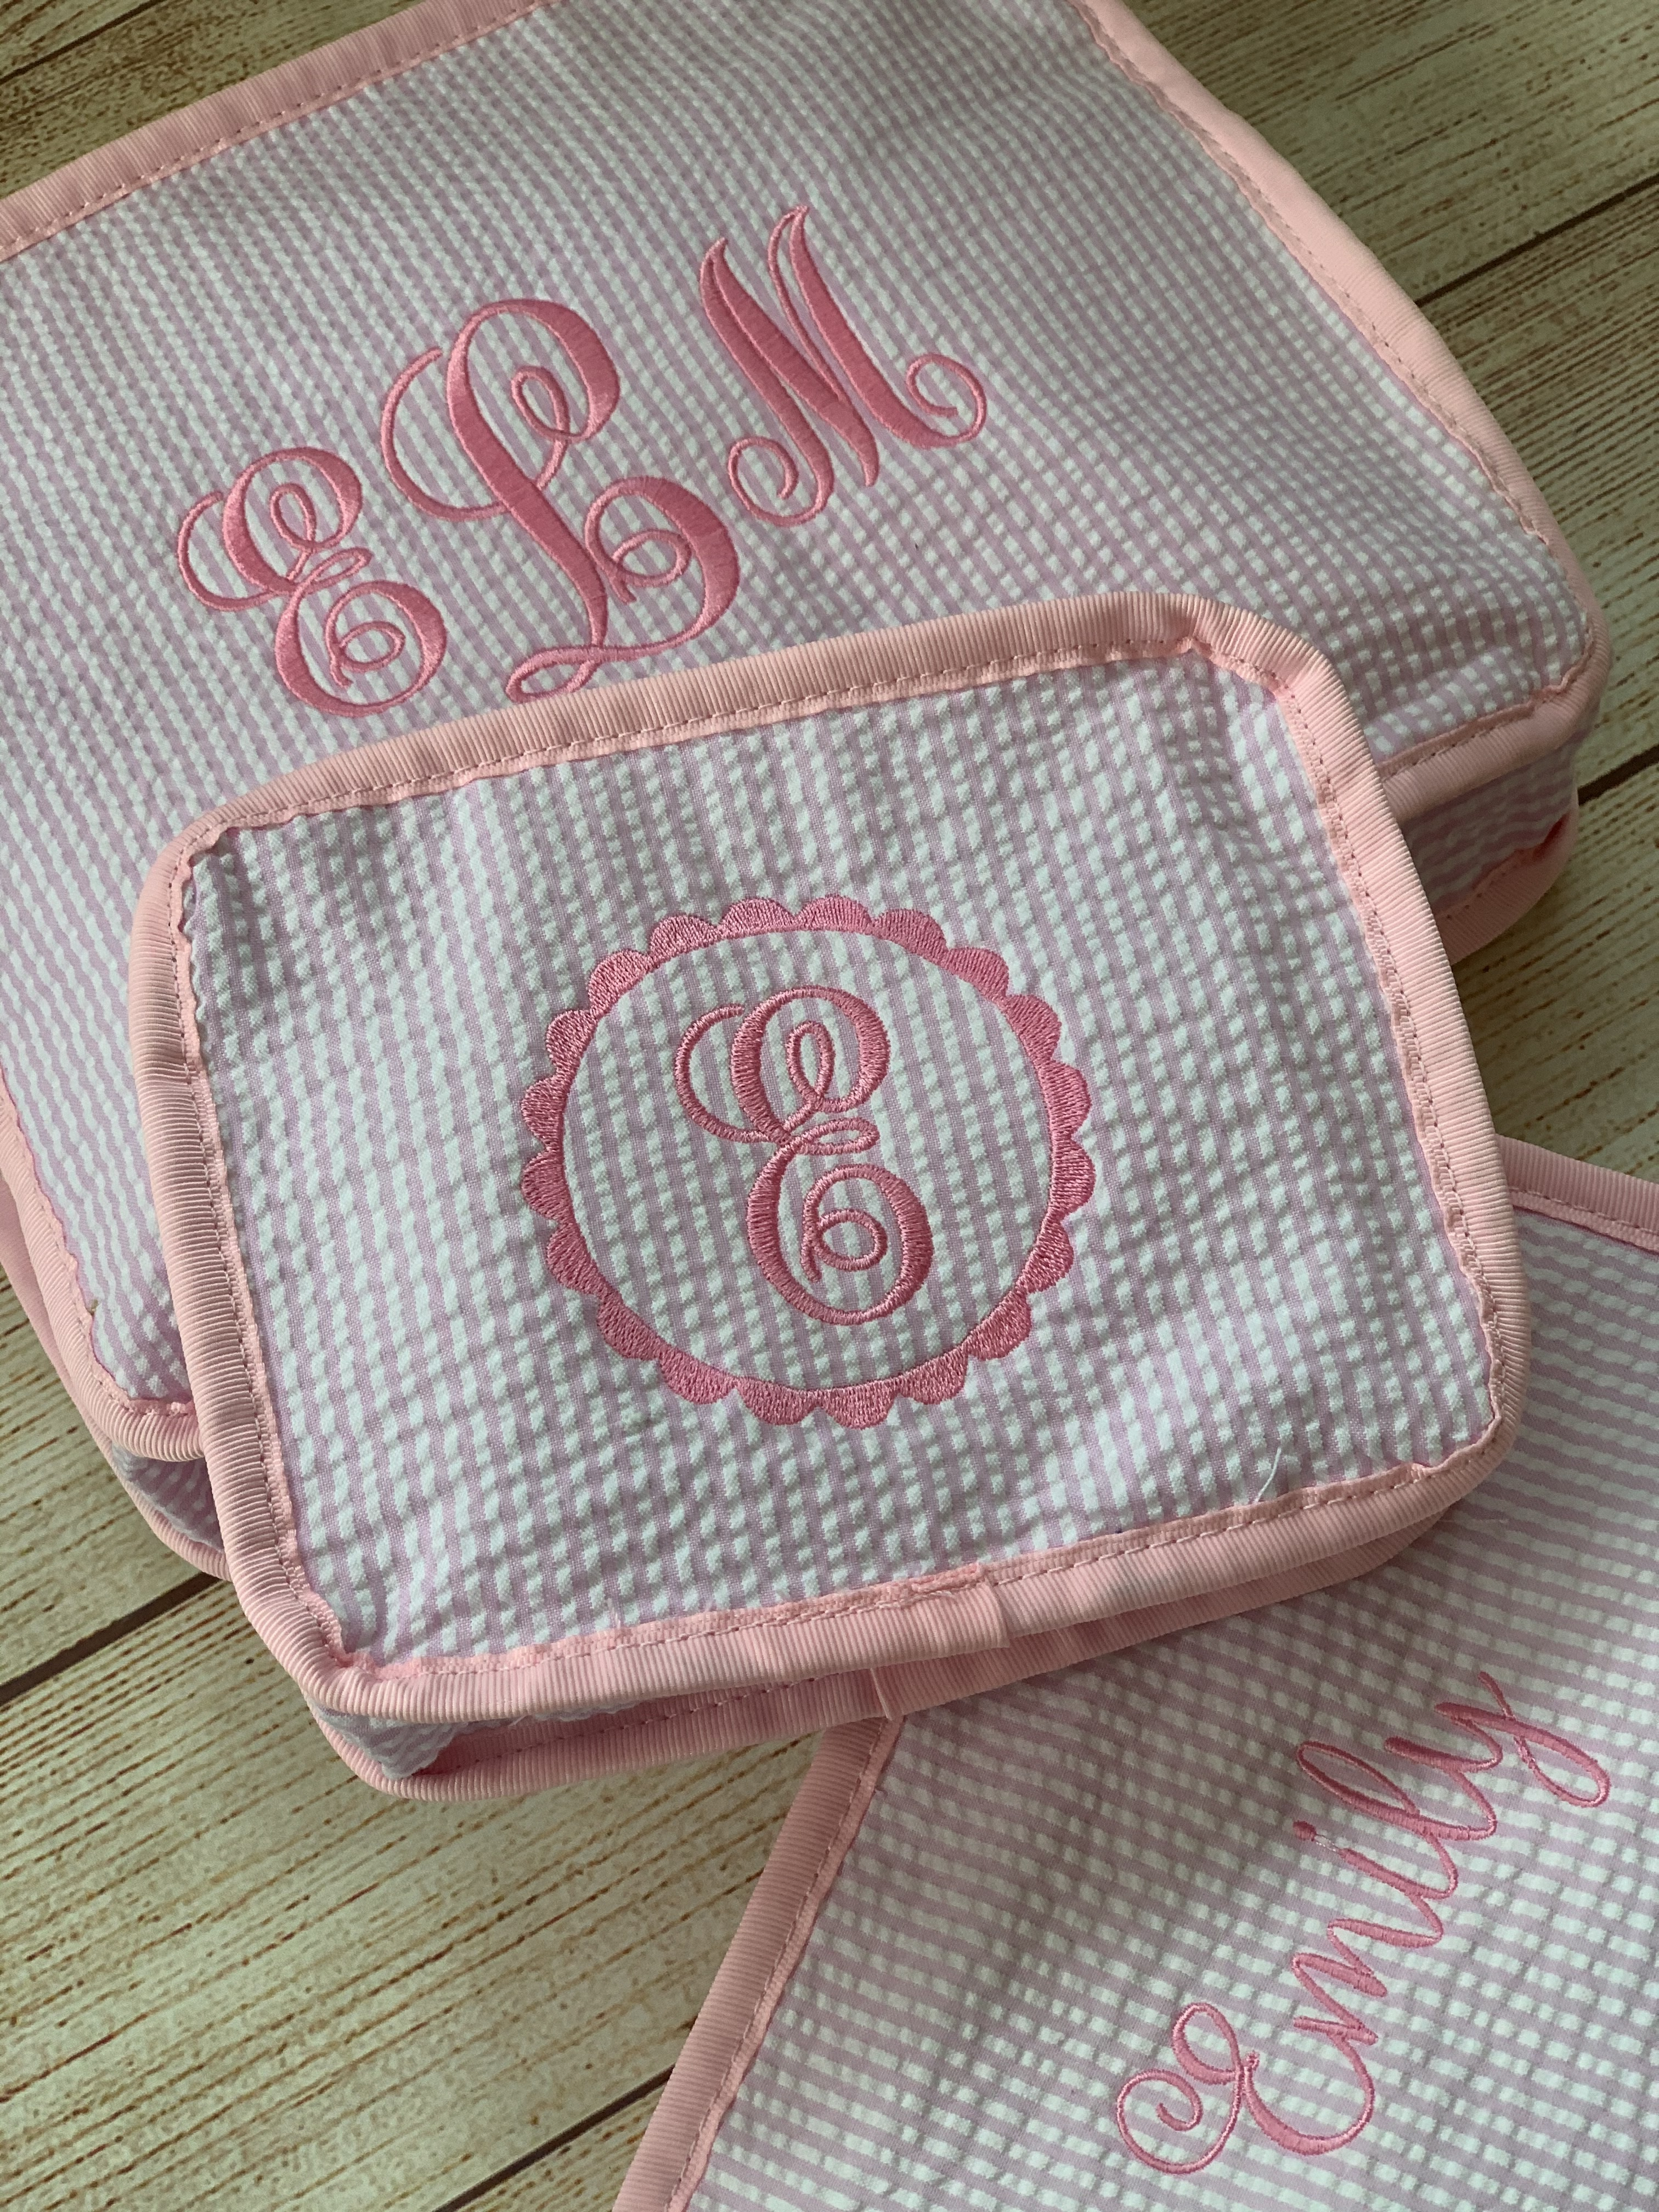 Baby Travel Organizers expertly monogrammed by Wicked Stitches Gifts.